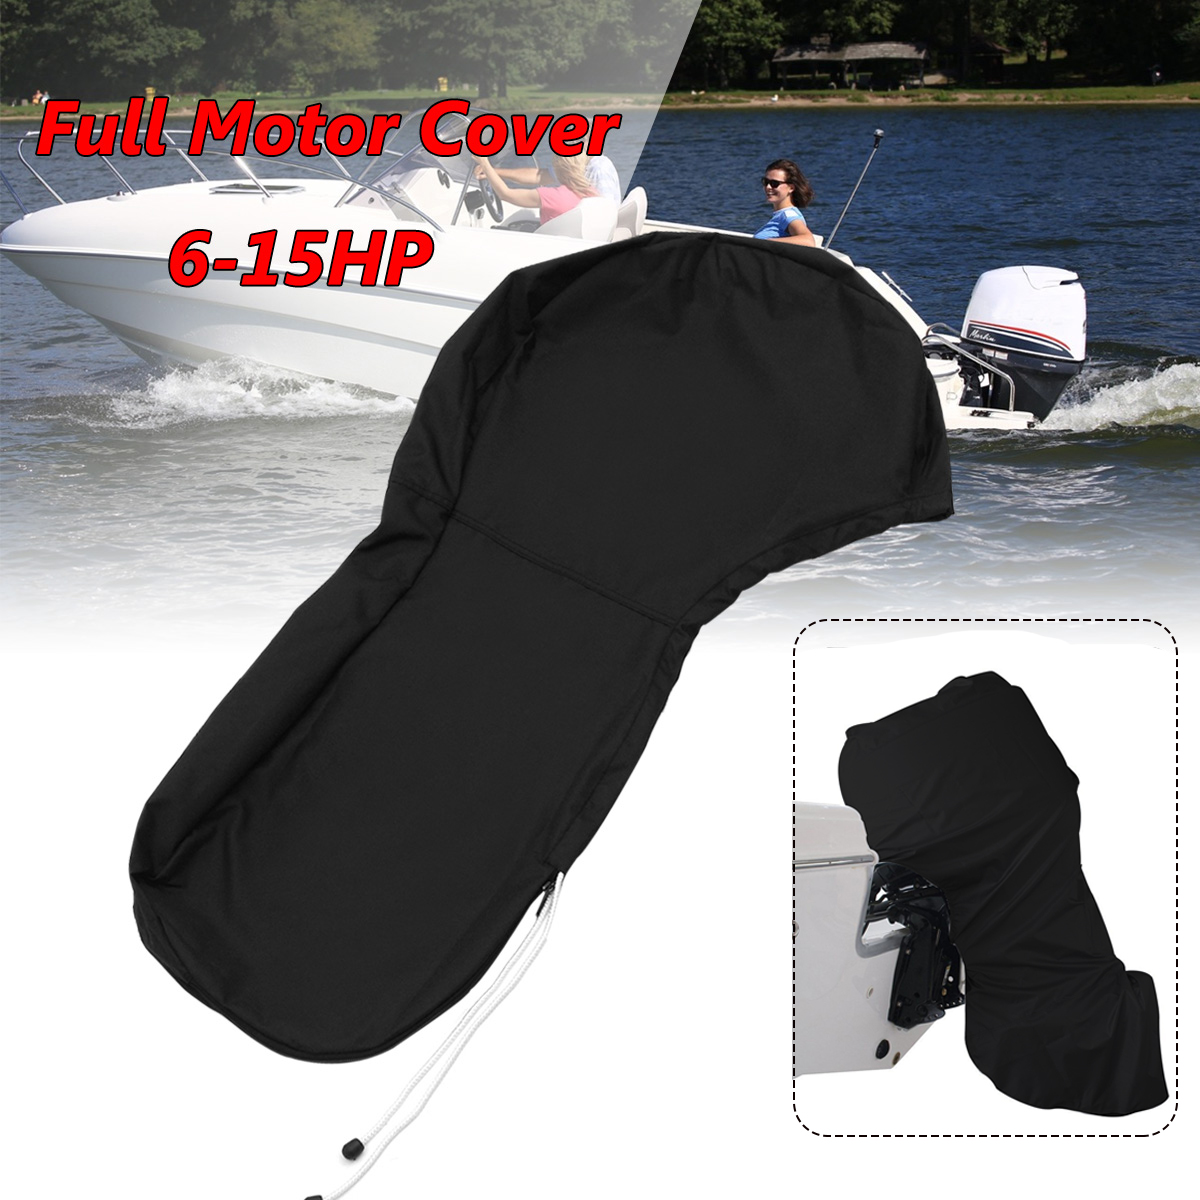 600D Black Boat Full Motor Cover Outboard Engine Cover Protective Bag Fits For 6 To 15HP Motor Waterproof